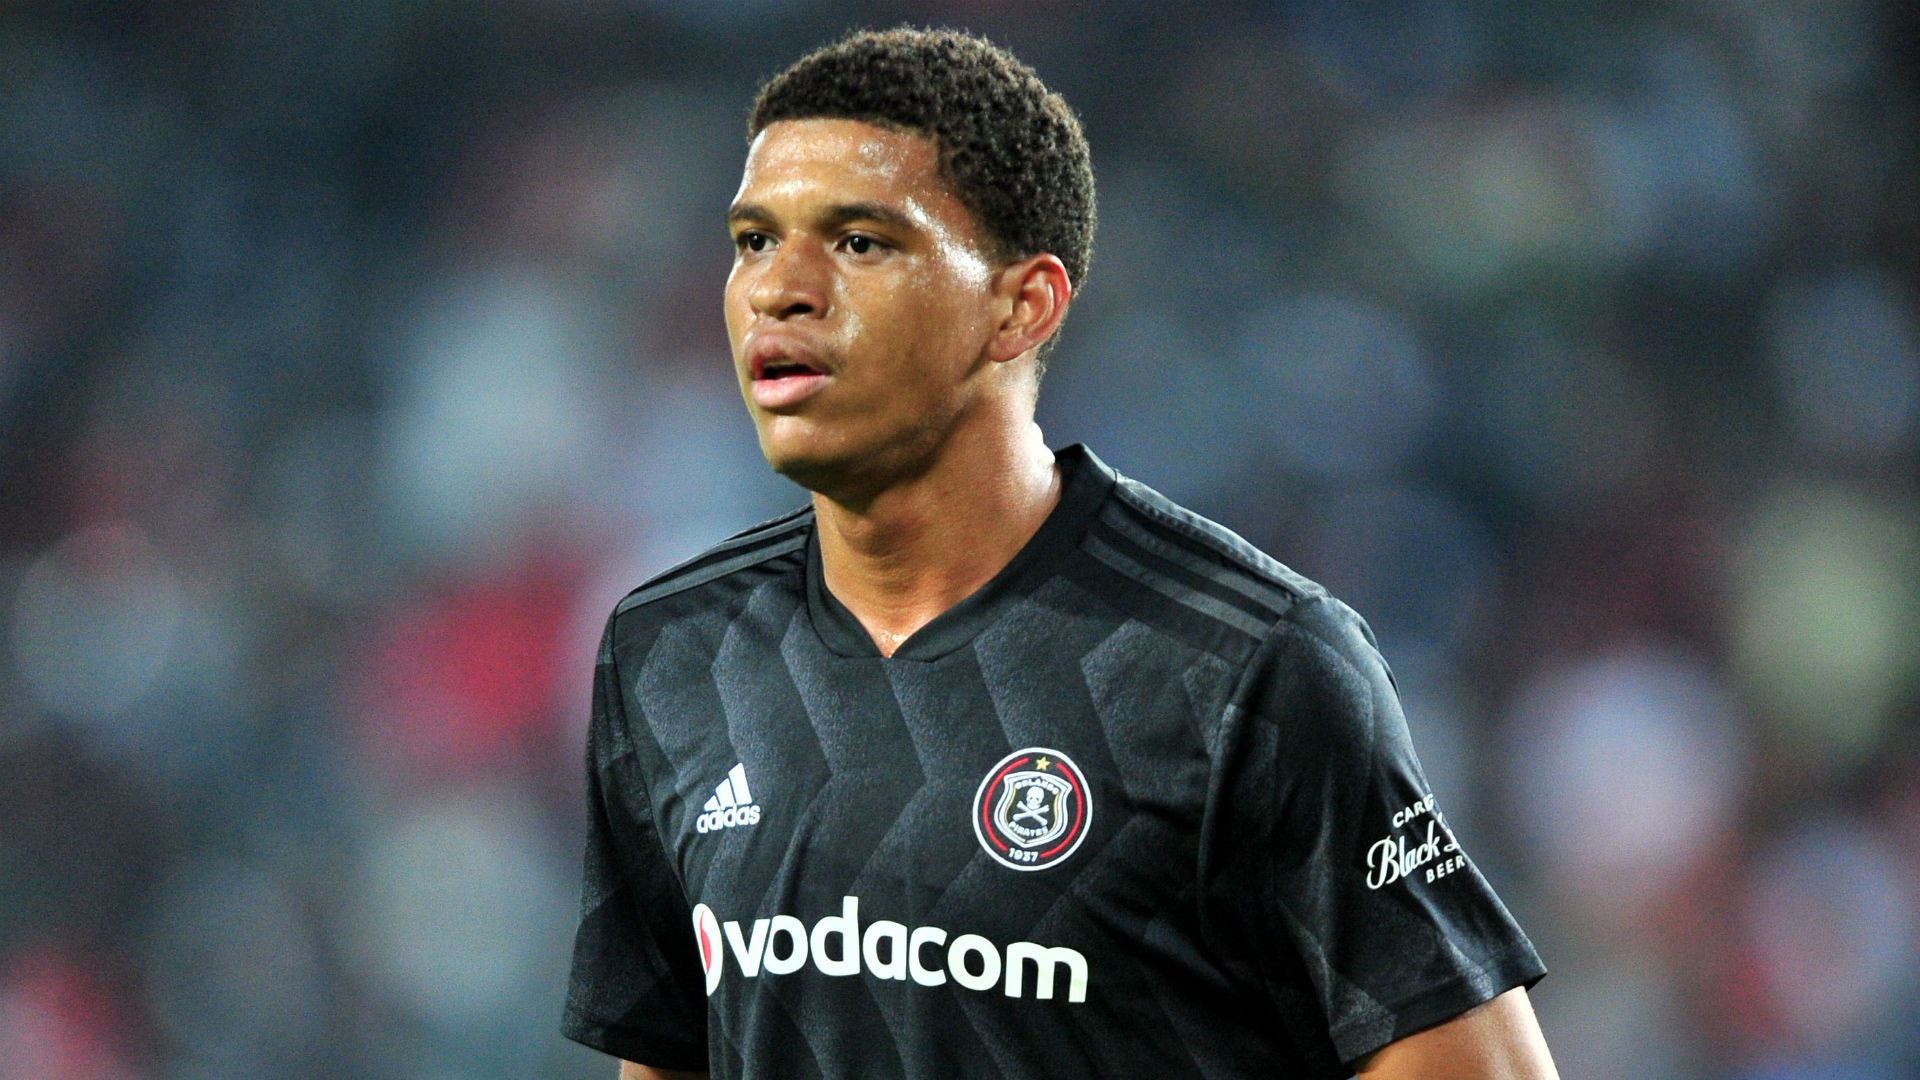 BREAKING NEWS: Orlando Pirates part ways with Caio Marcelo